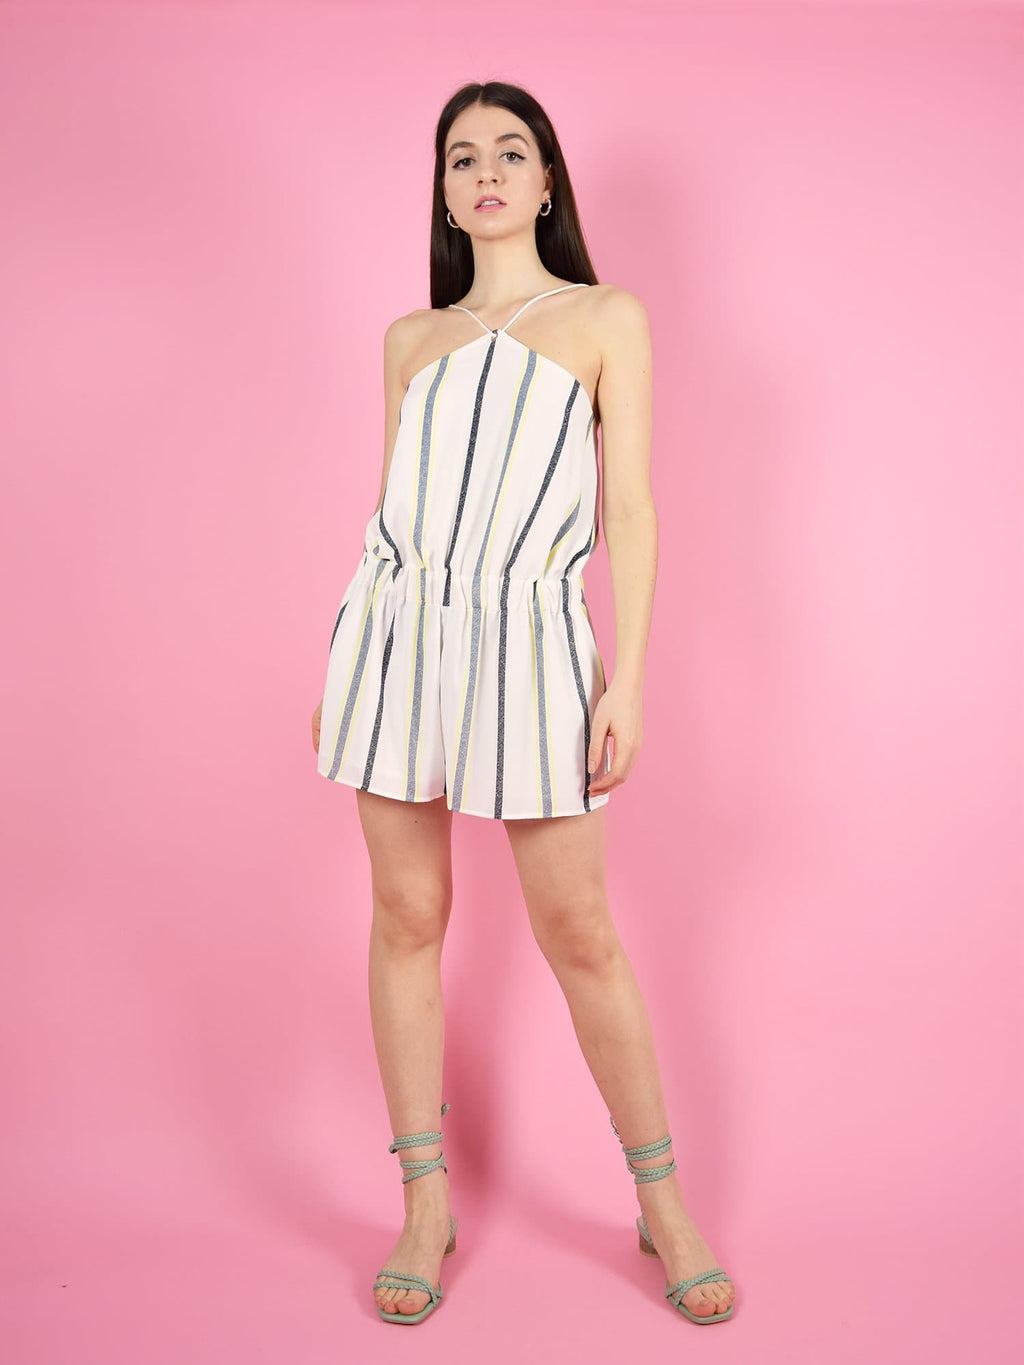 blonde gone rogue's desert dreams playsuit in white stripe is the perfect short jumpsuit for the summer. It is strapless, backless and has a loose, comfortable fit.